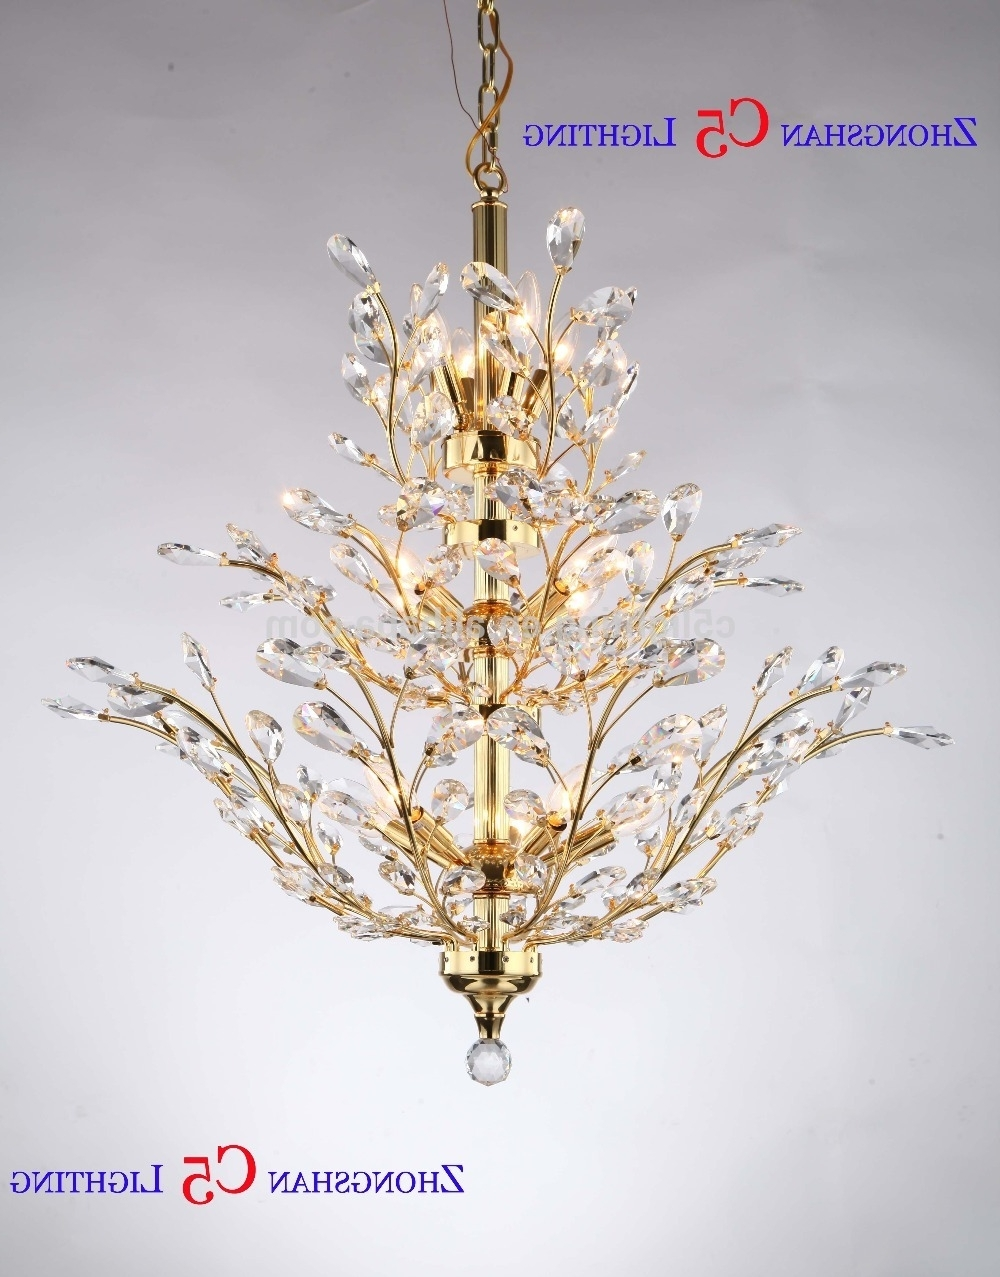 Chinese Chandeliers Pertaining To Famous Crystal Chandeliers Made In China, Crystal Chandeliers Made In China (View 8 of 15)